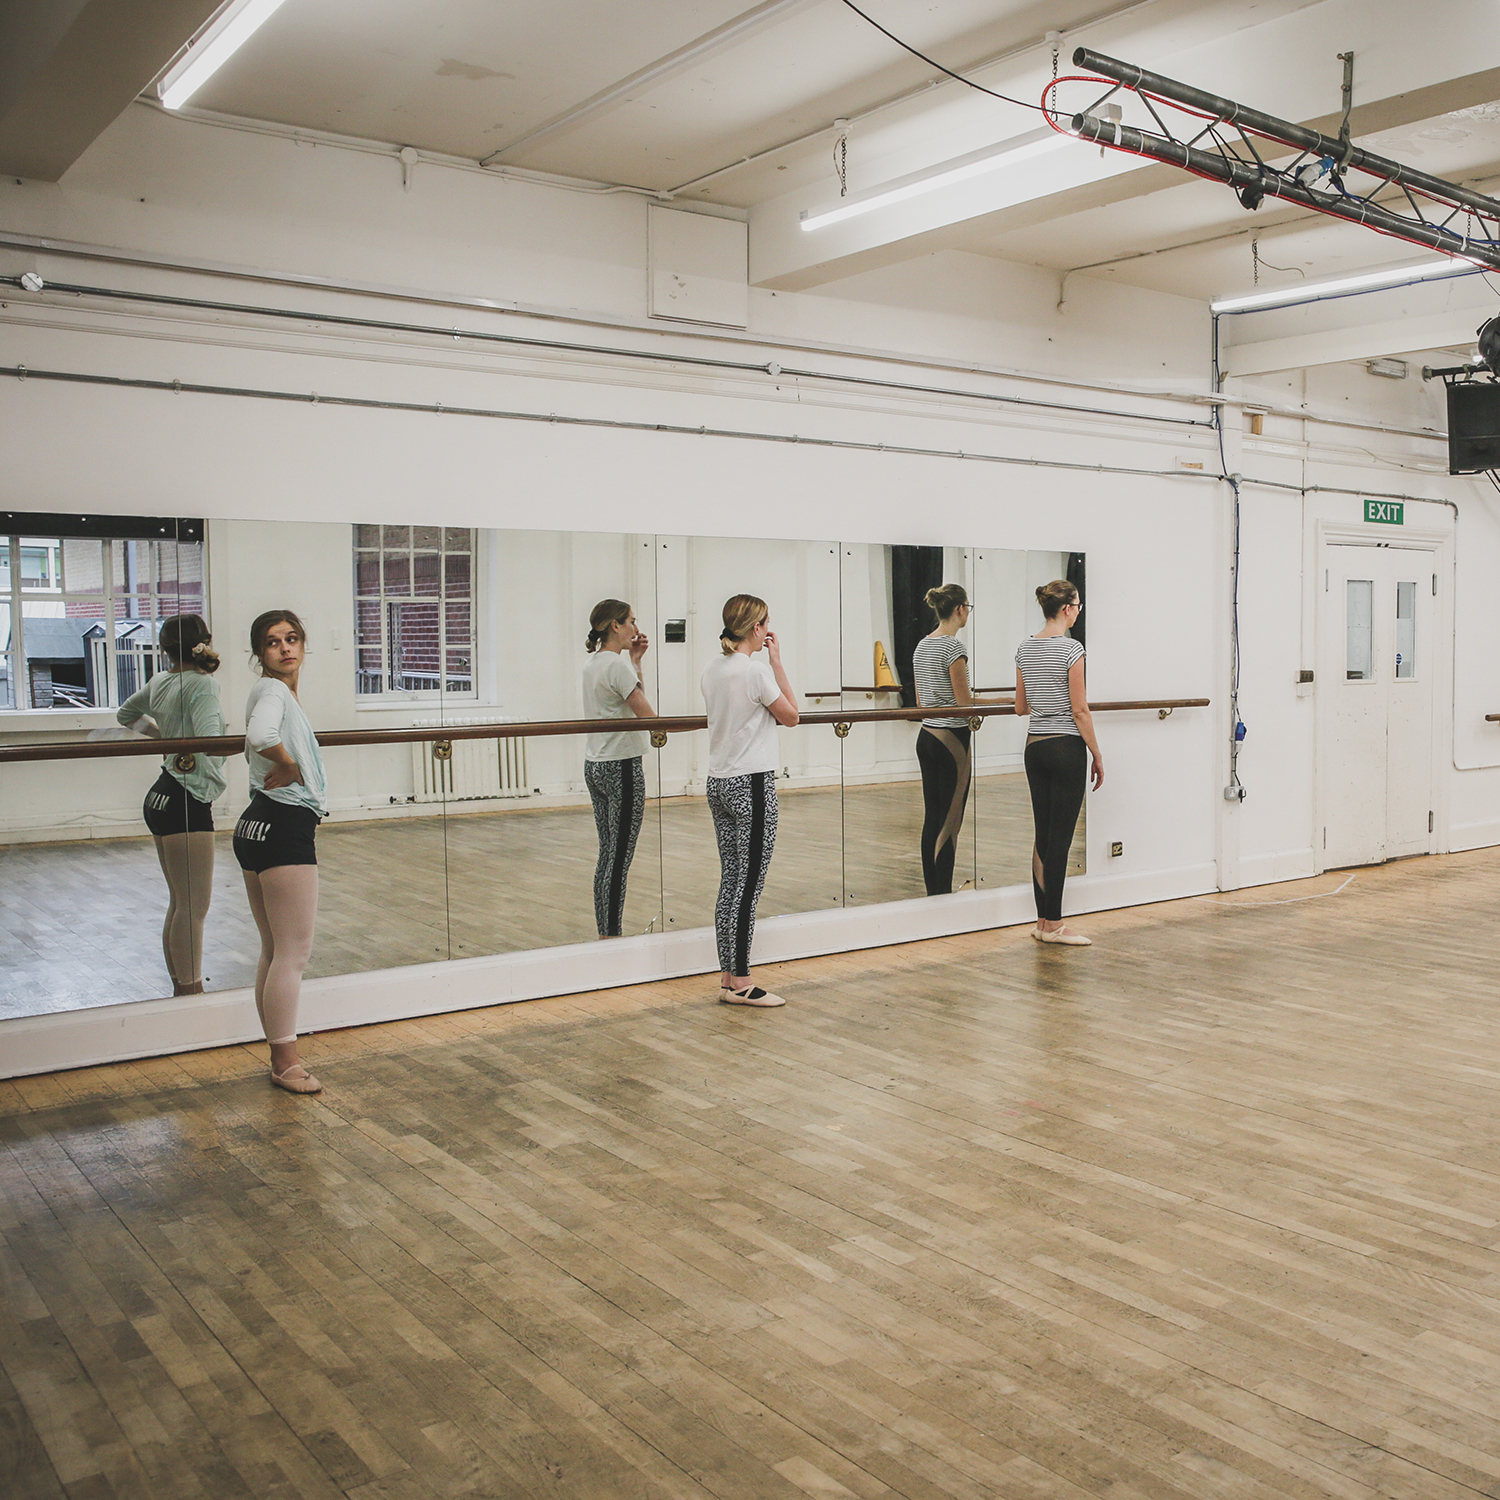 Three ladies taking part in a dance lesson.